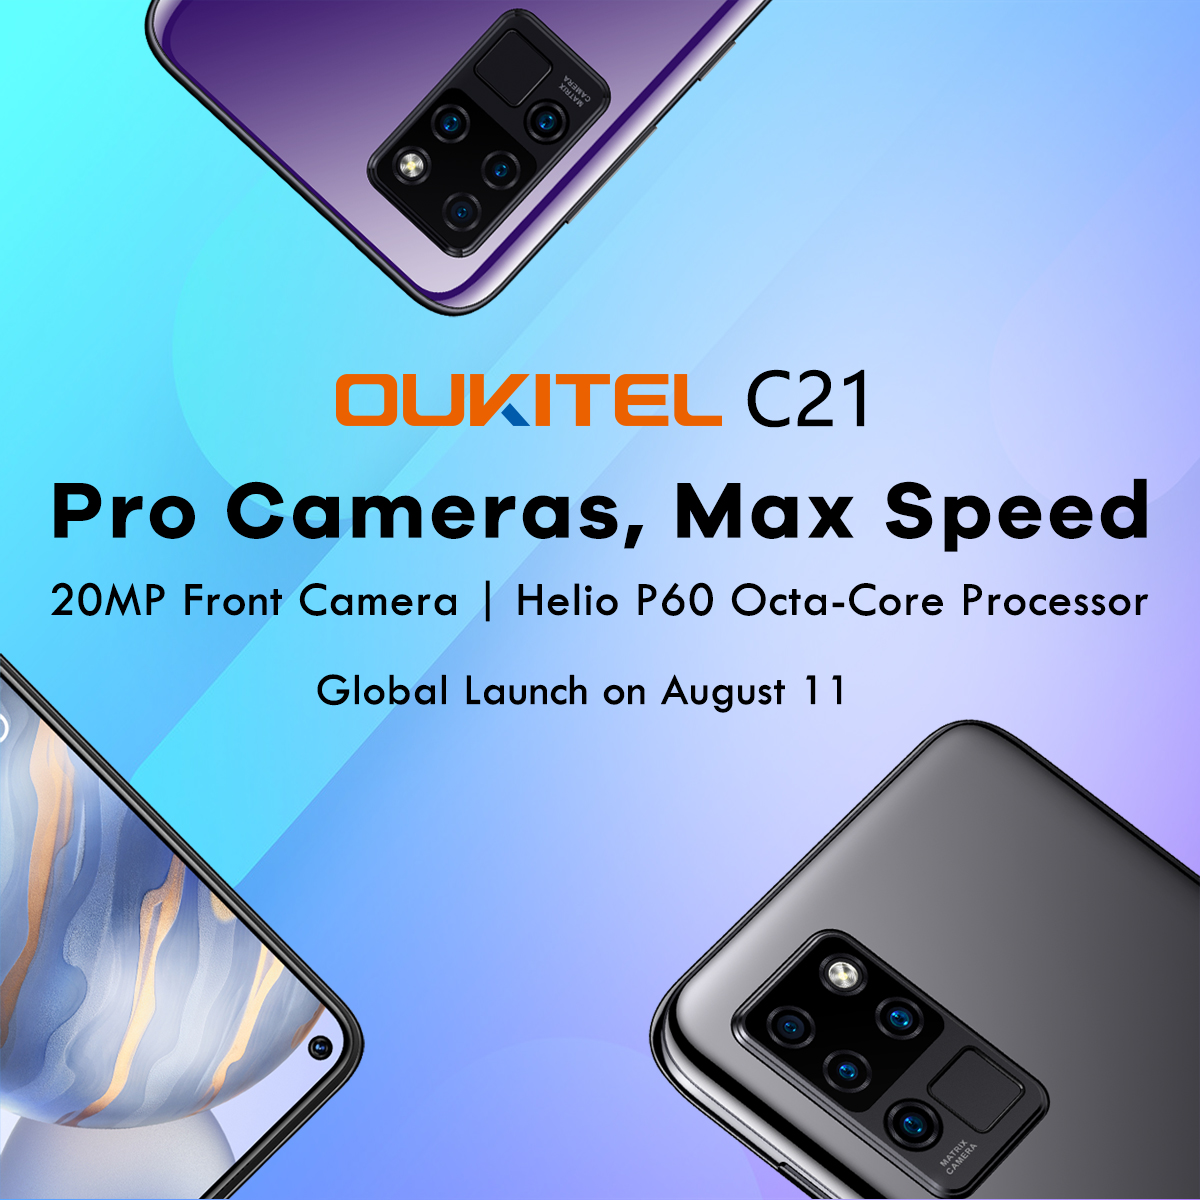 Introducing the camera and performance beast #OukitelC21 📣